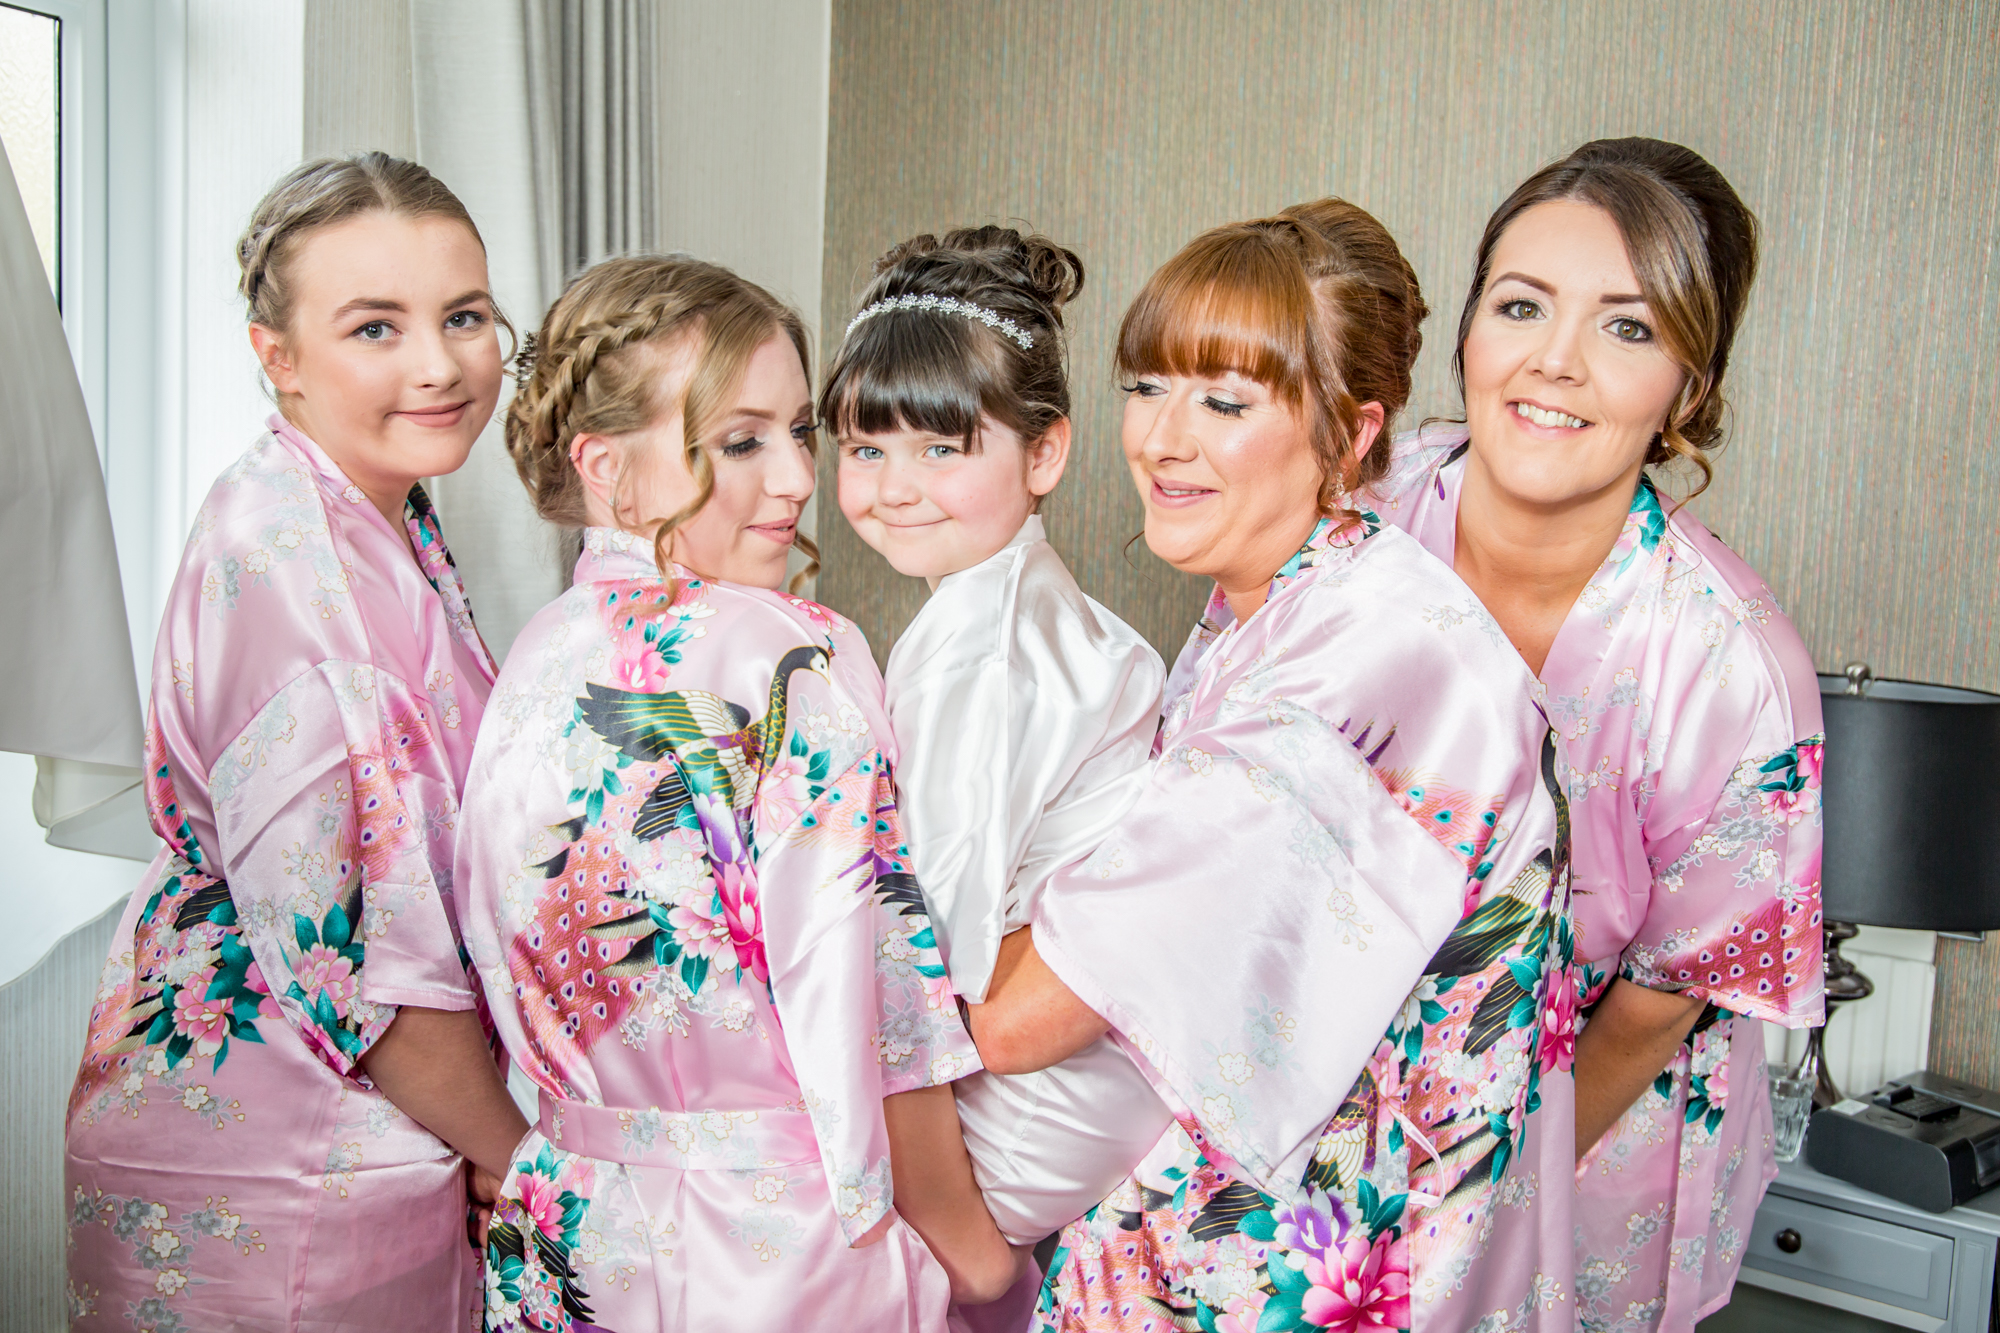 Swansea Wedding Photographer Bride Party Hair and Makeup. Bridal Prep Photography covering The Gower, Carmarthenshire, Llanelli and South Wales